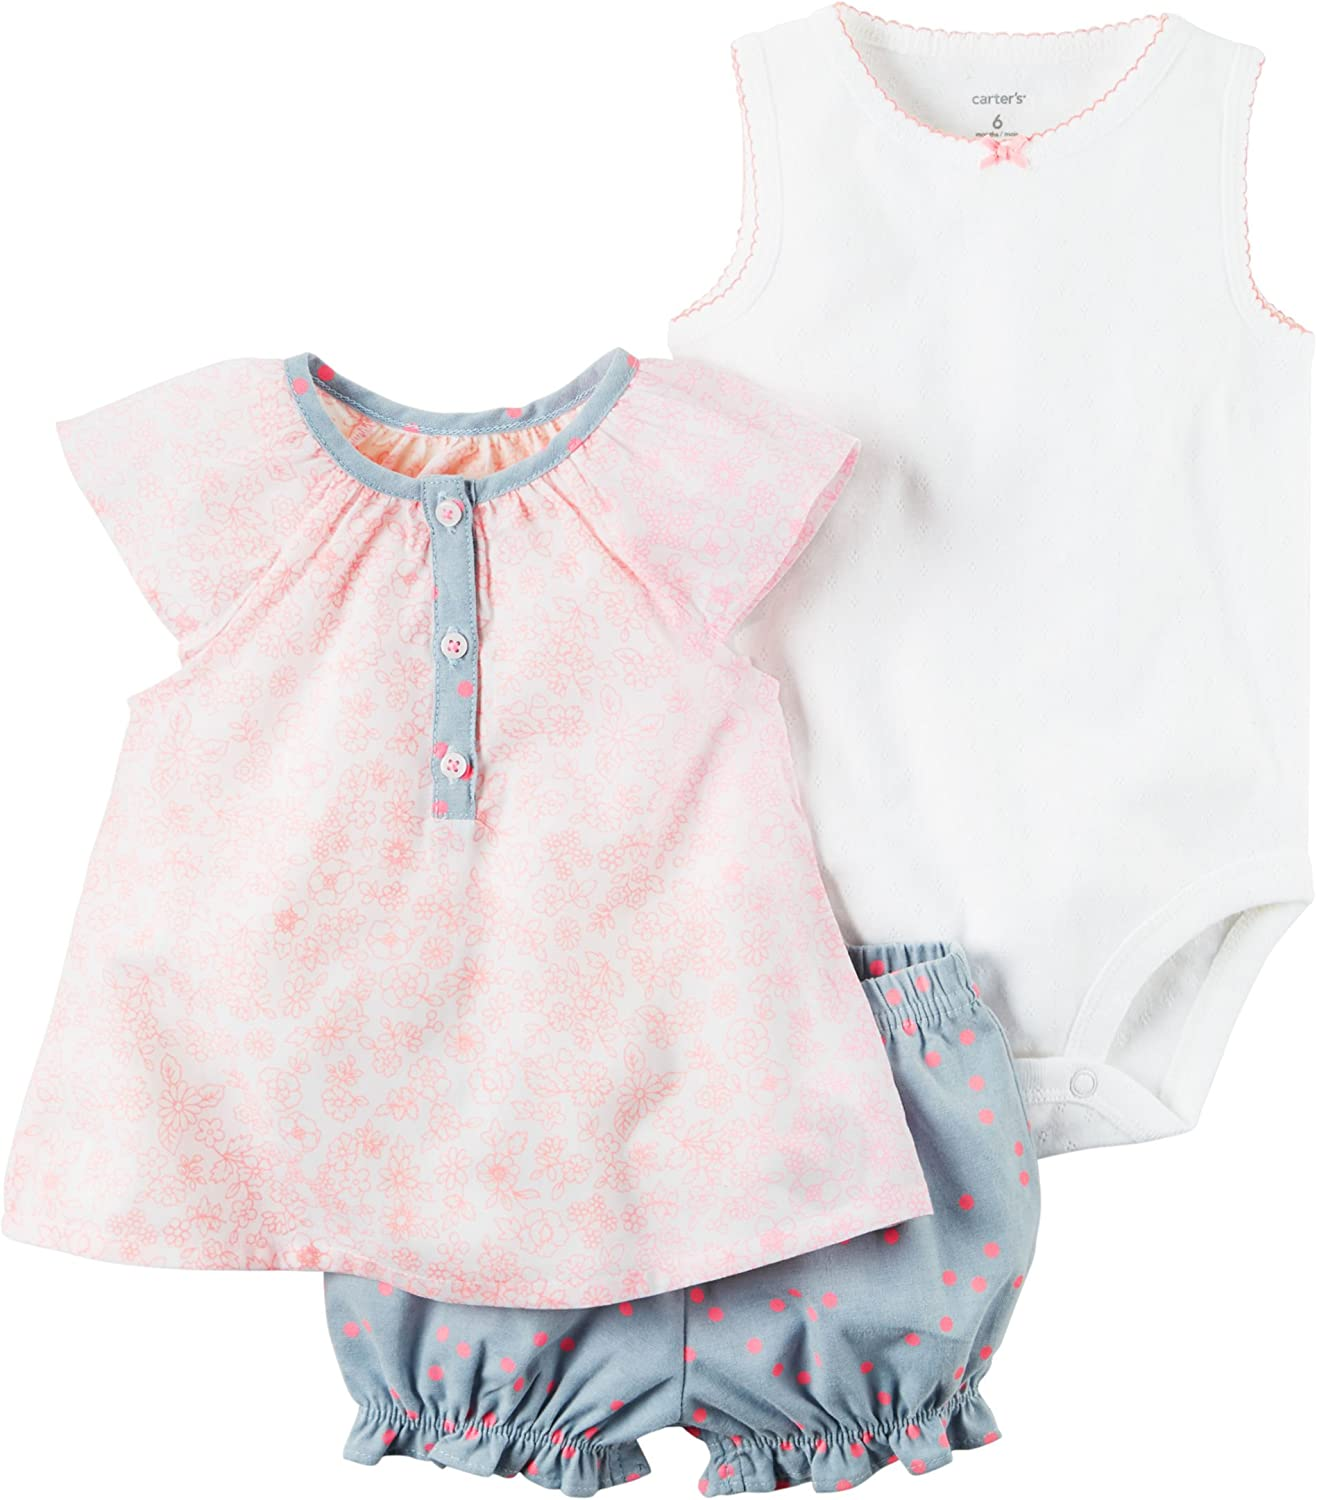 William Carter Baby Girl Clothes 3 Piece Bubble Shorts Diaper Cover Set Pink Flowers//Denim Polka 3M